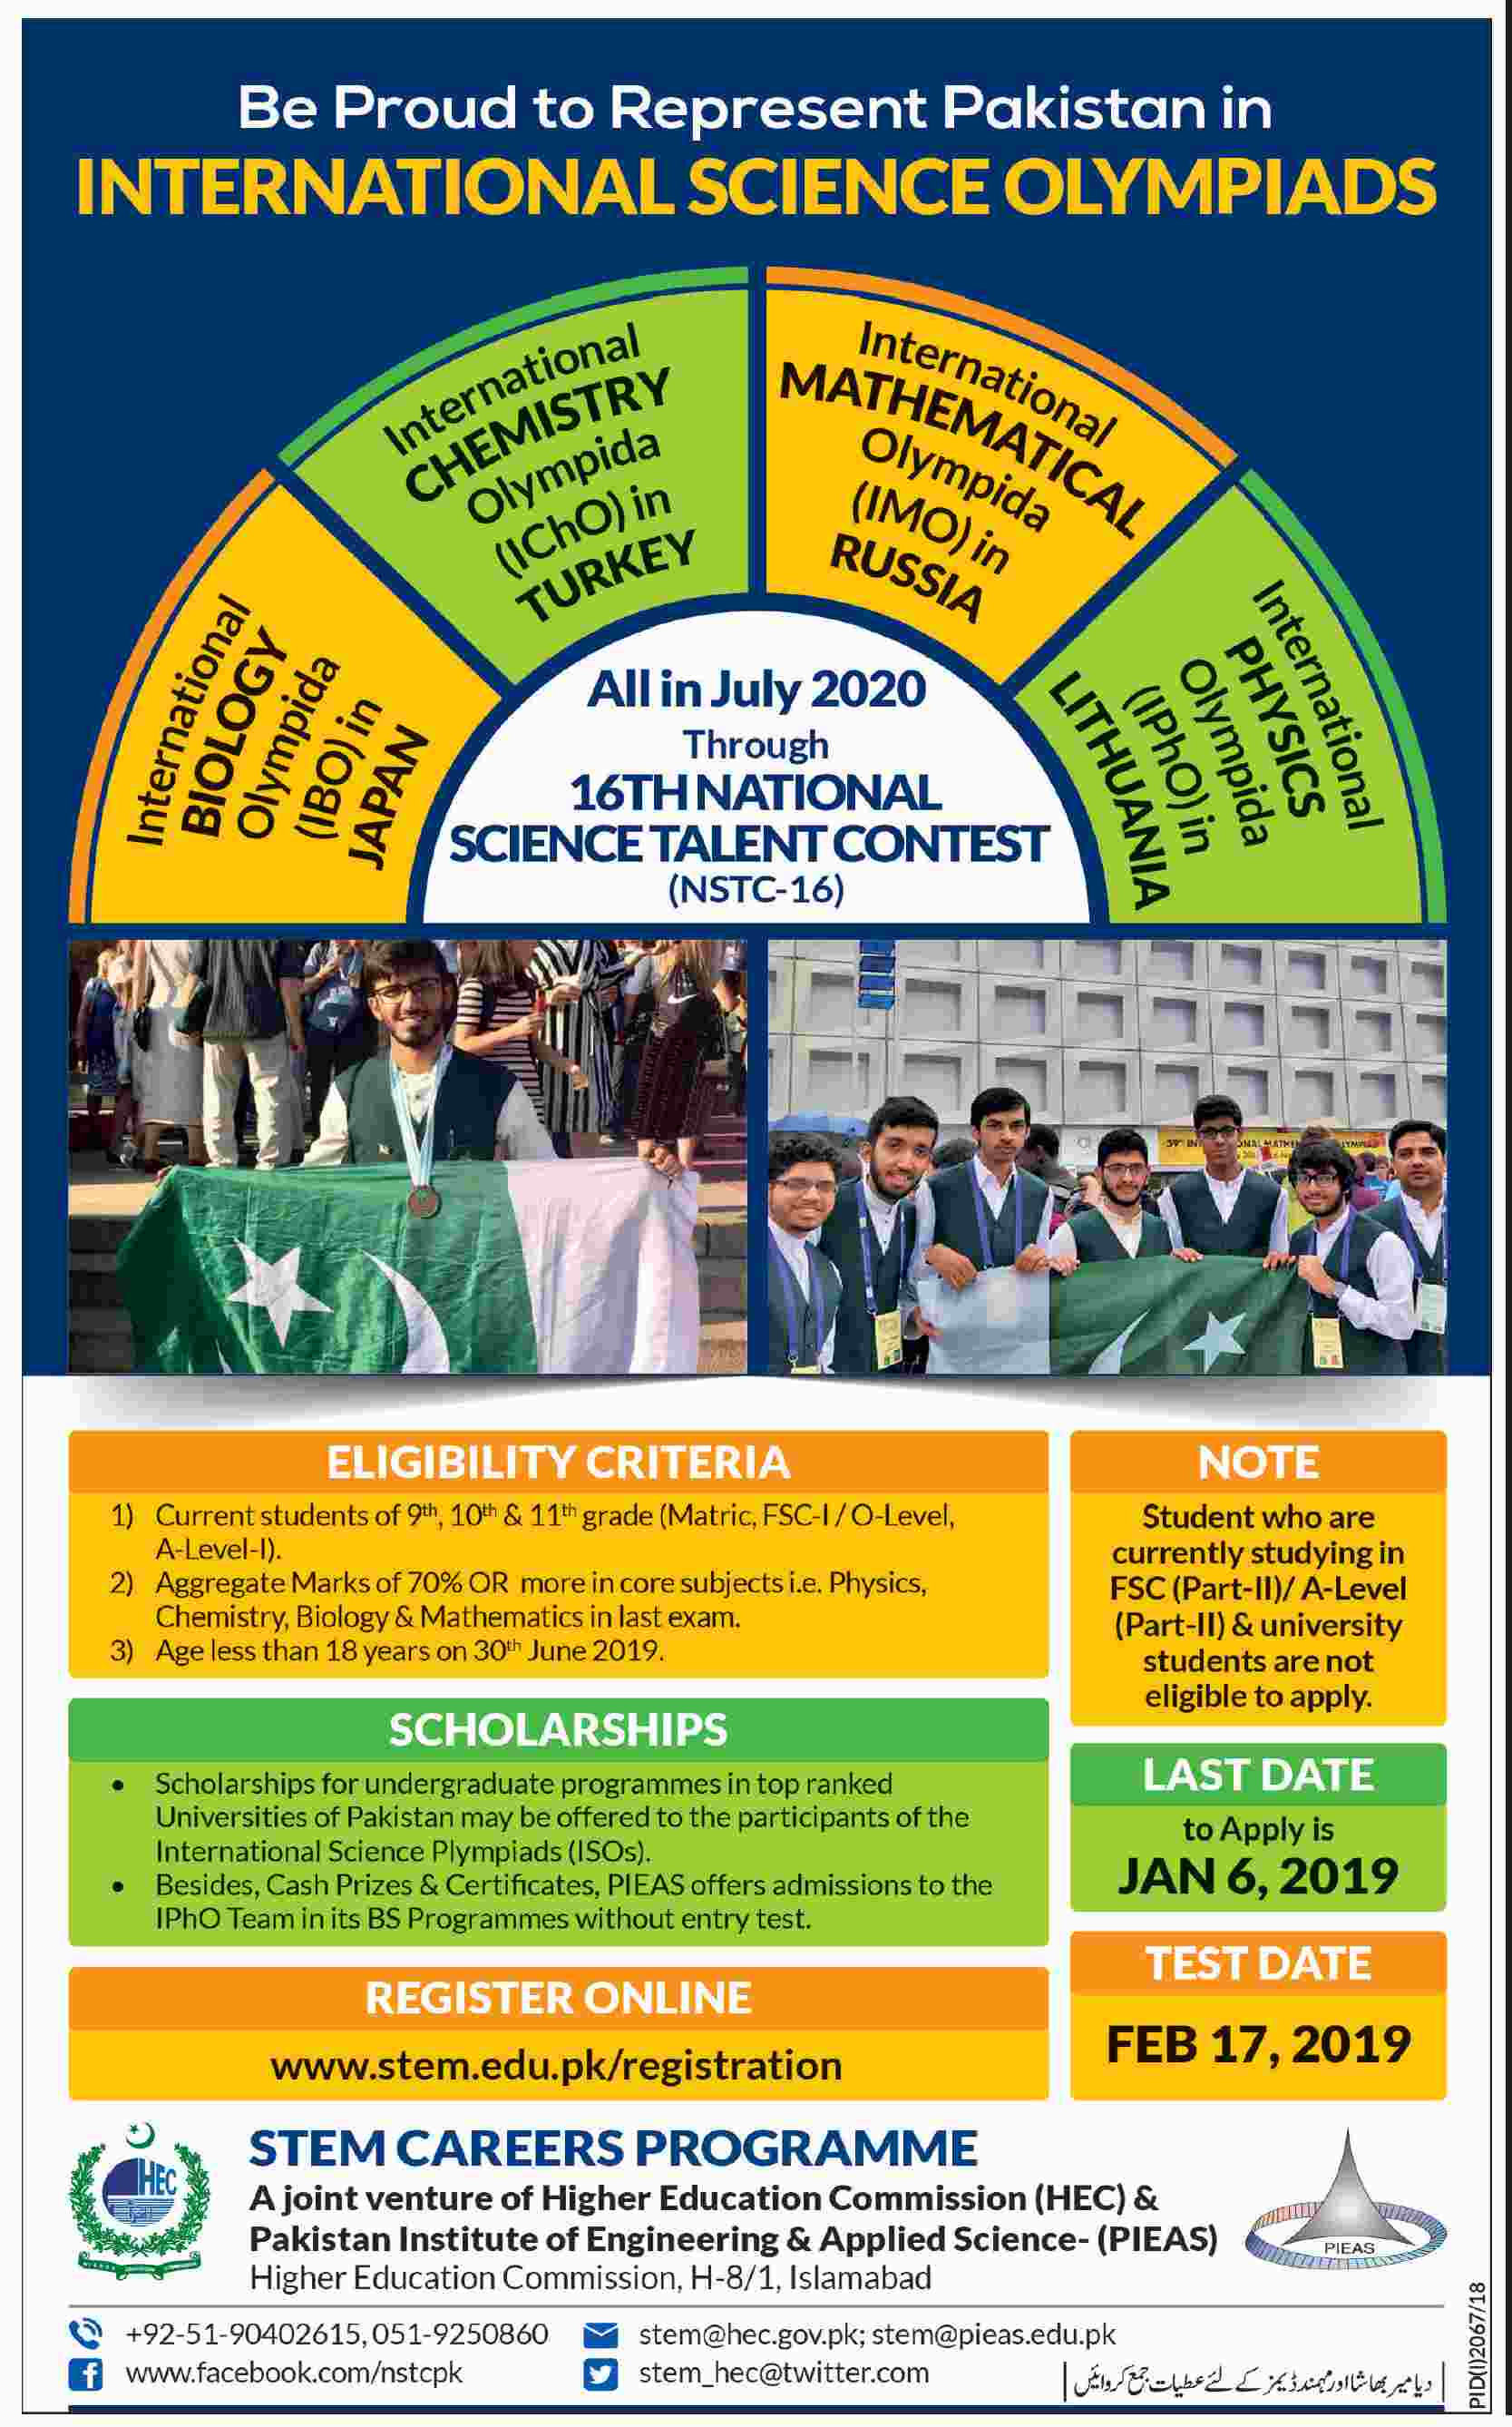 International Science Olympiads (Science Talent Contest)